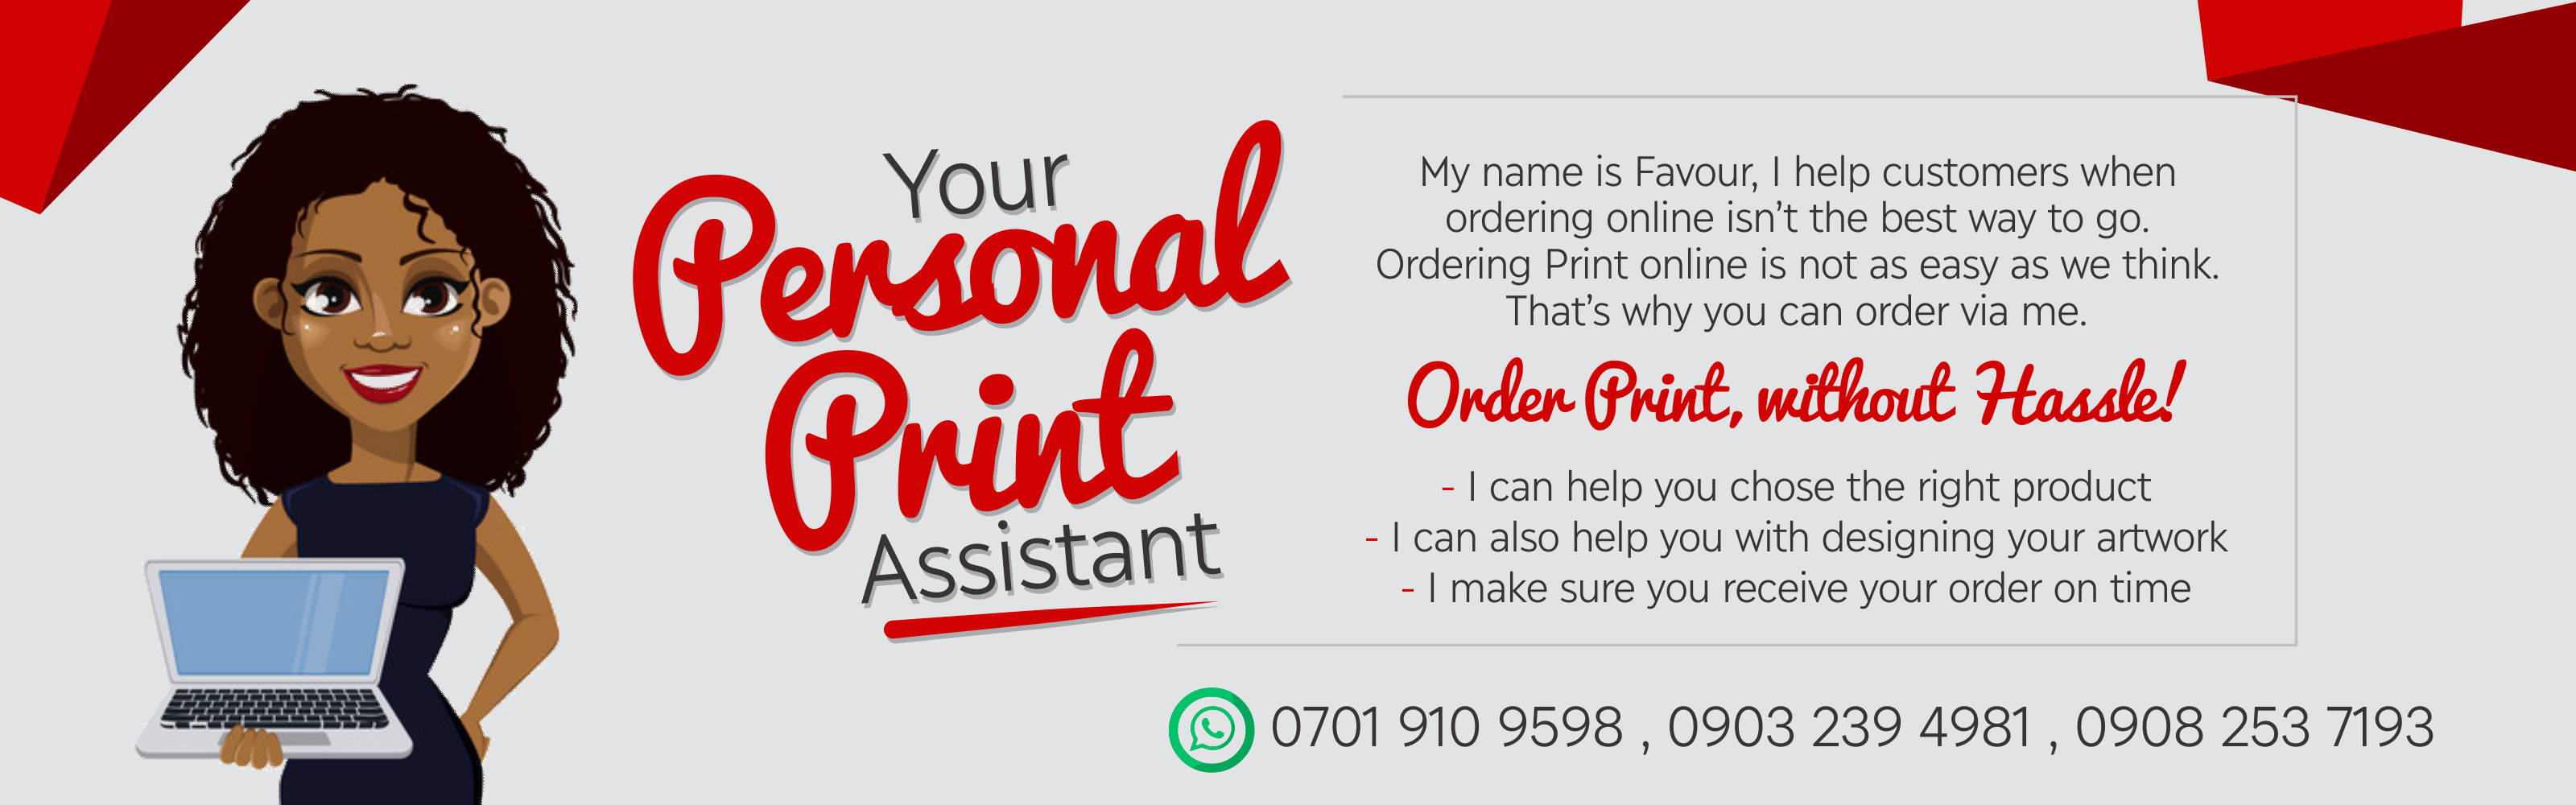 Your Presonal Print Assistant